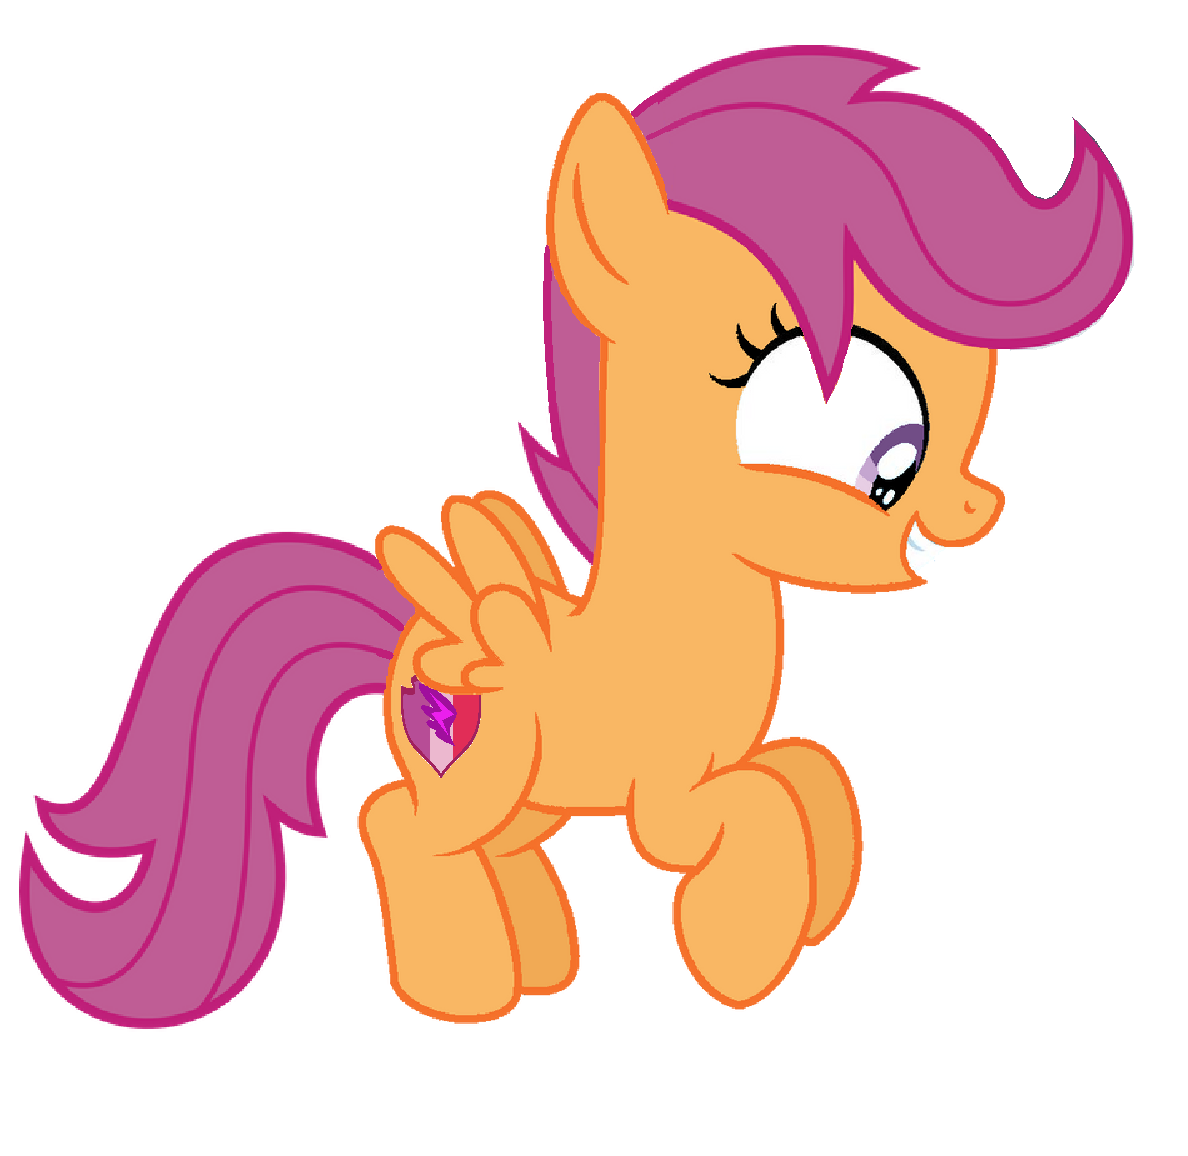 Scootaloo Flying 4 Vector By Detailedatream1991 On Deviantart Top free images & vectors for scootaloo flying in png, vector, file, black and white, logo, clipart, cartoon and transparent. scootaloo flying 4 vector by